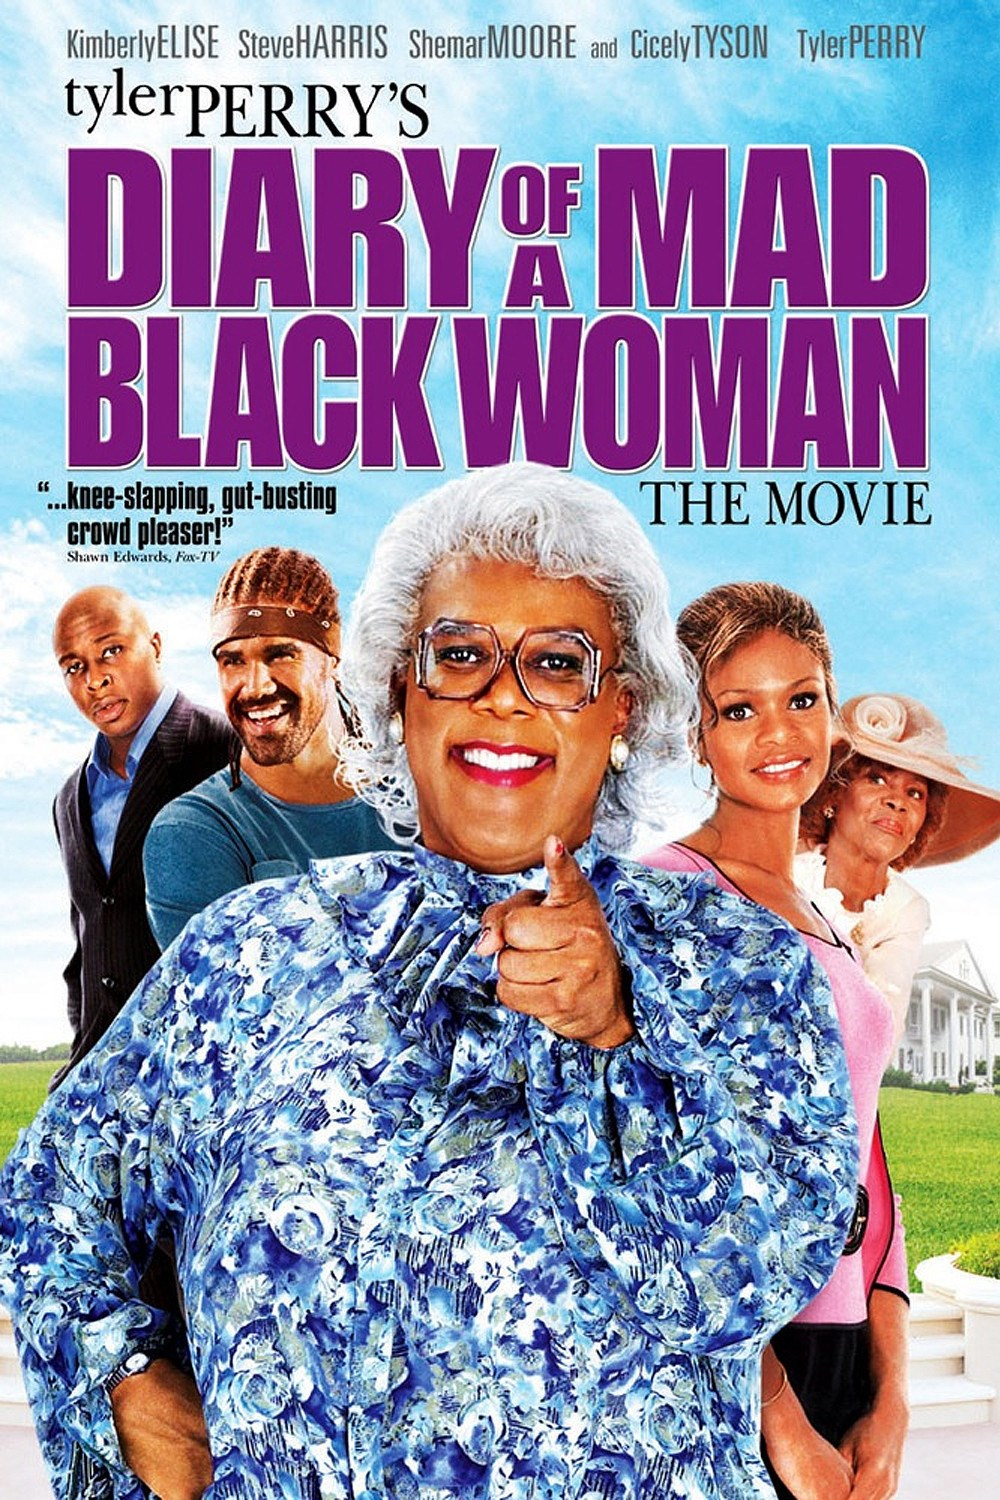 essay diary mad black woman Film review of diary of a mad black woman in five pages this 2005 film is summarized and reviewed in terms of genre that generates confusion.